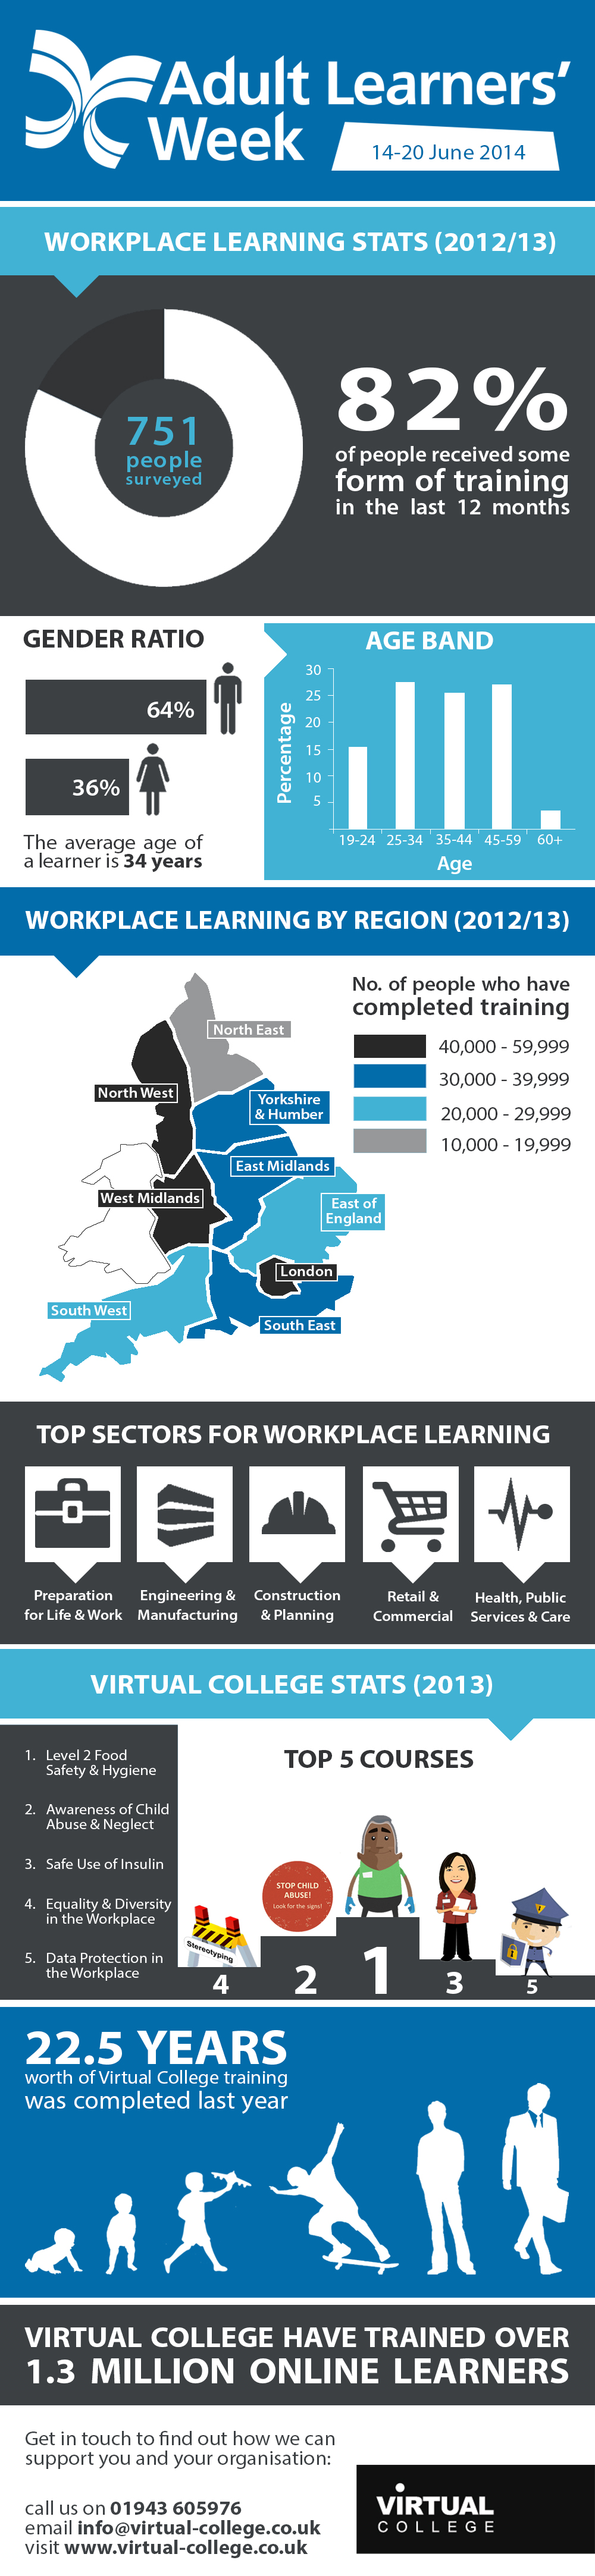 Online Learners Workplace Learning Statistics Infographic